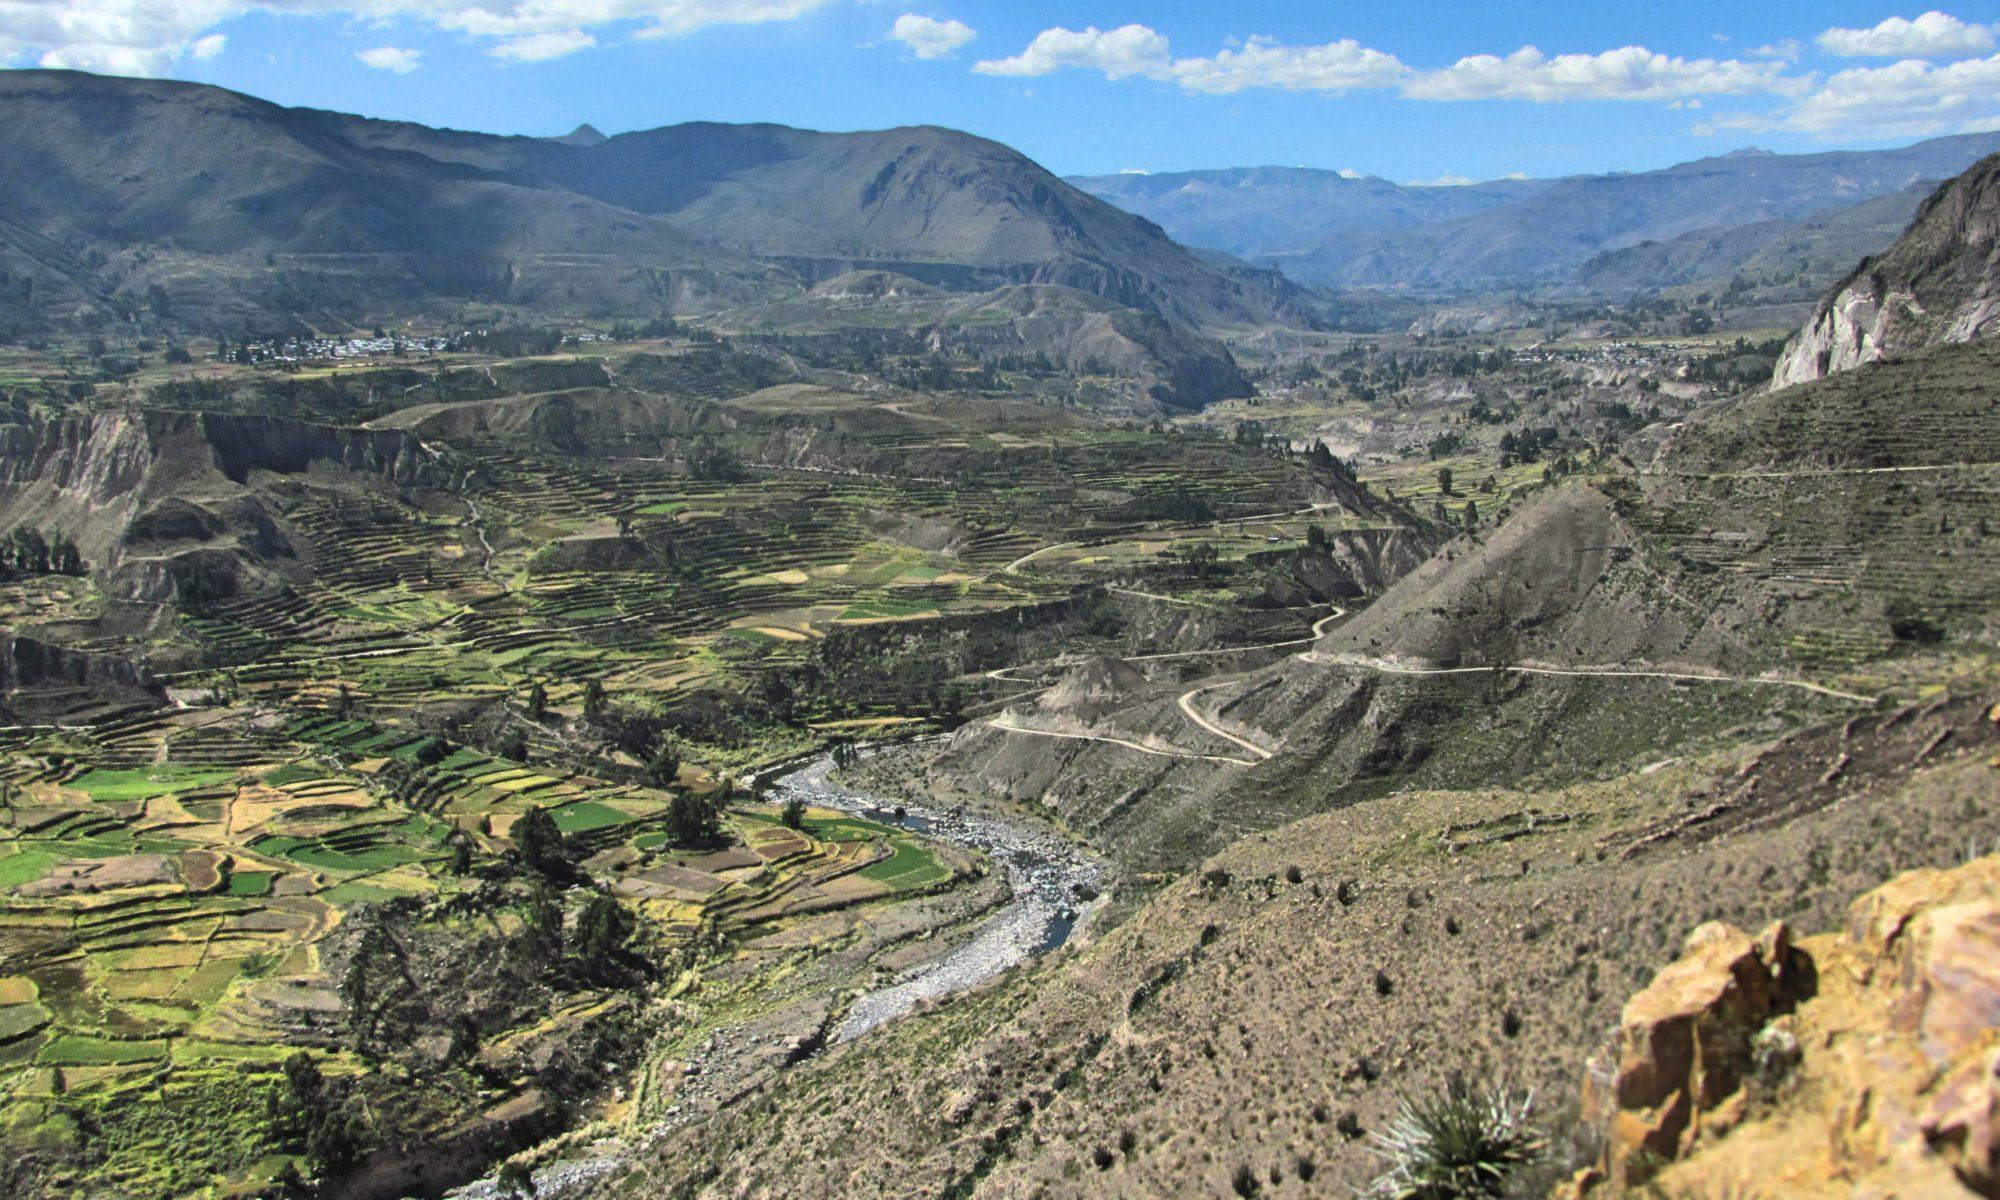 The Colca